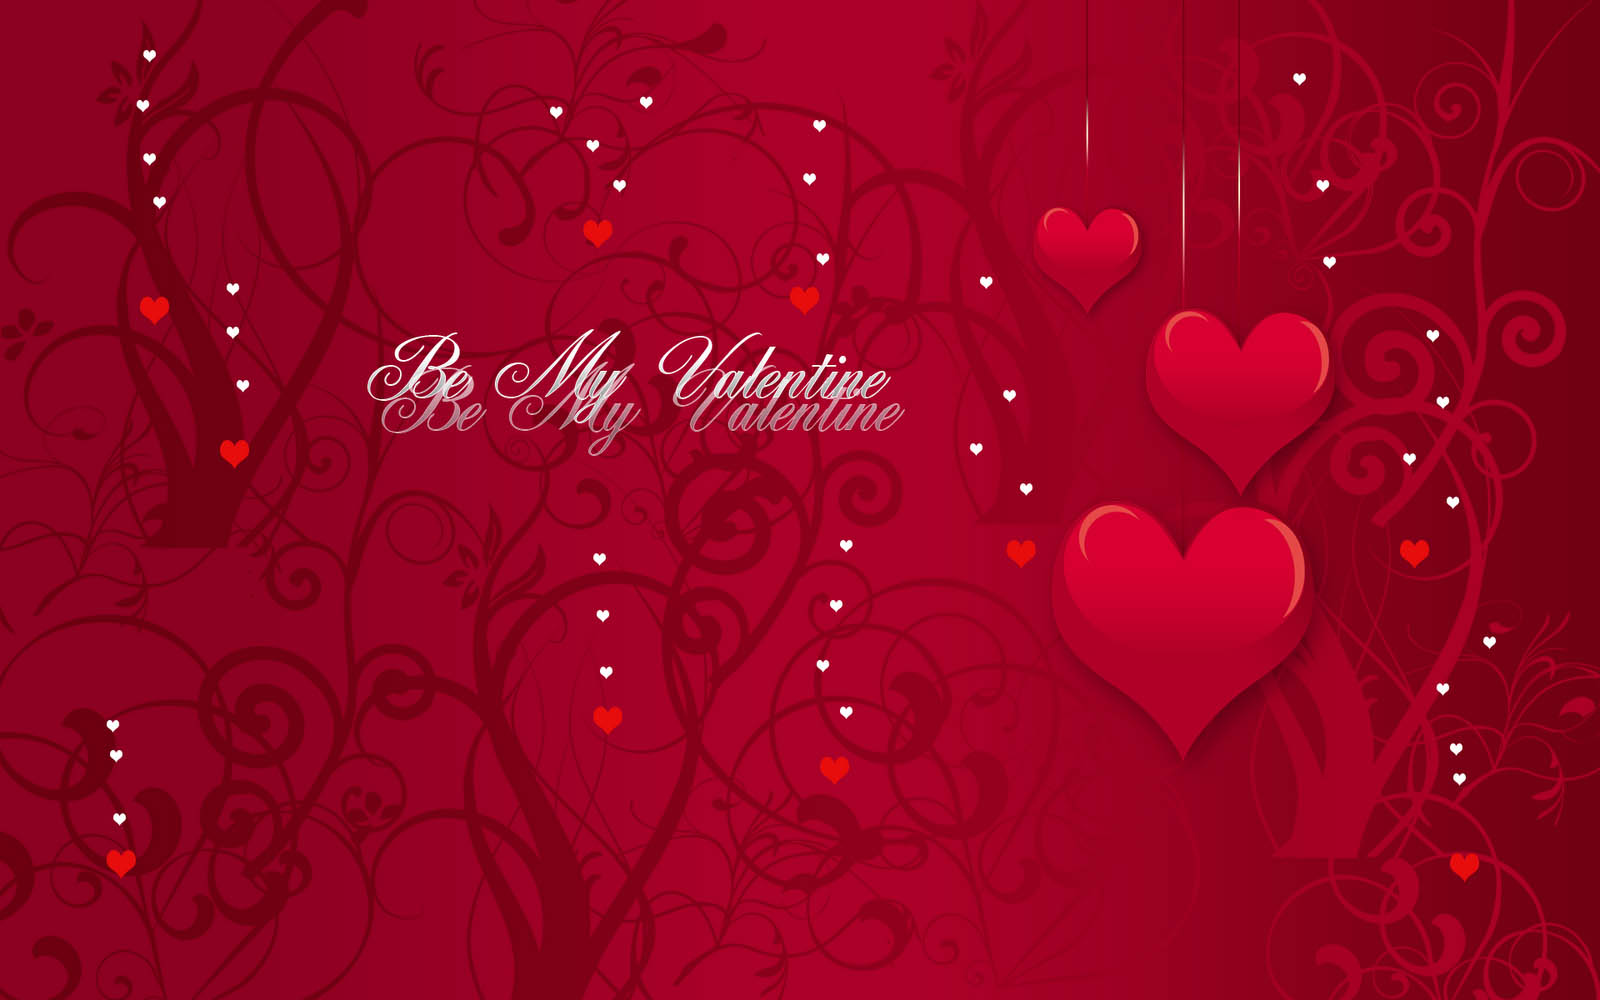 Tag Valentines Day Desktop Wallpapers Images Photos Pictures and 1600x1000